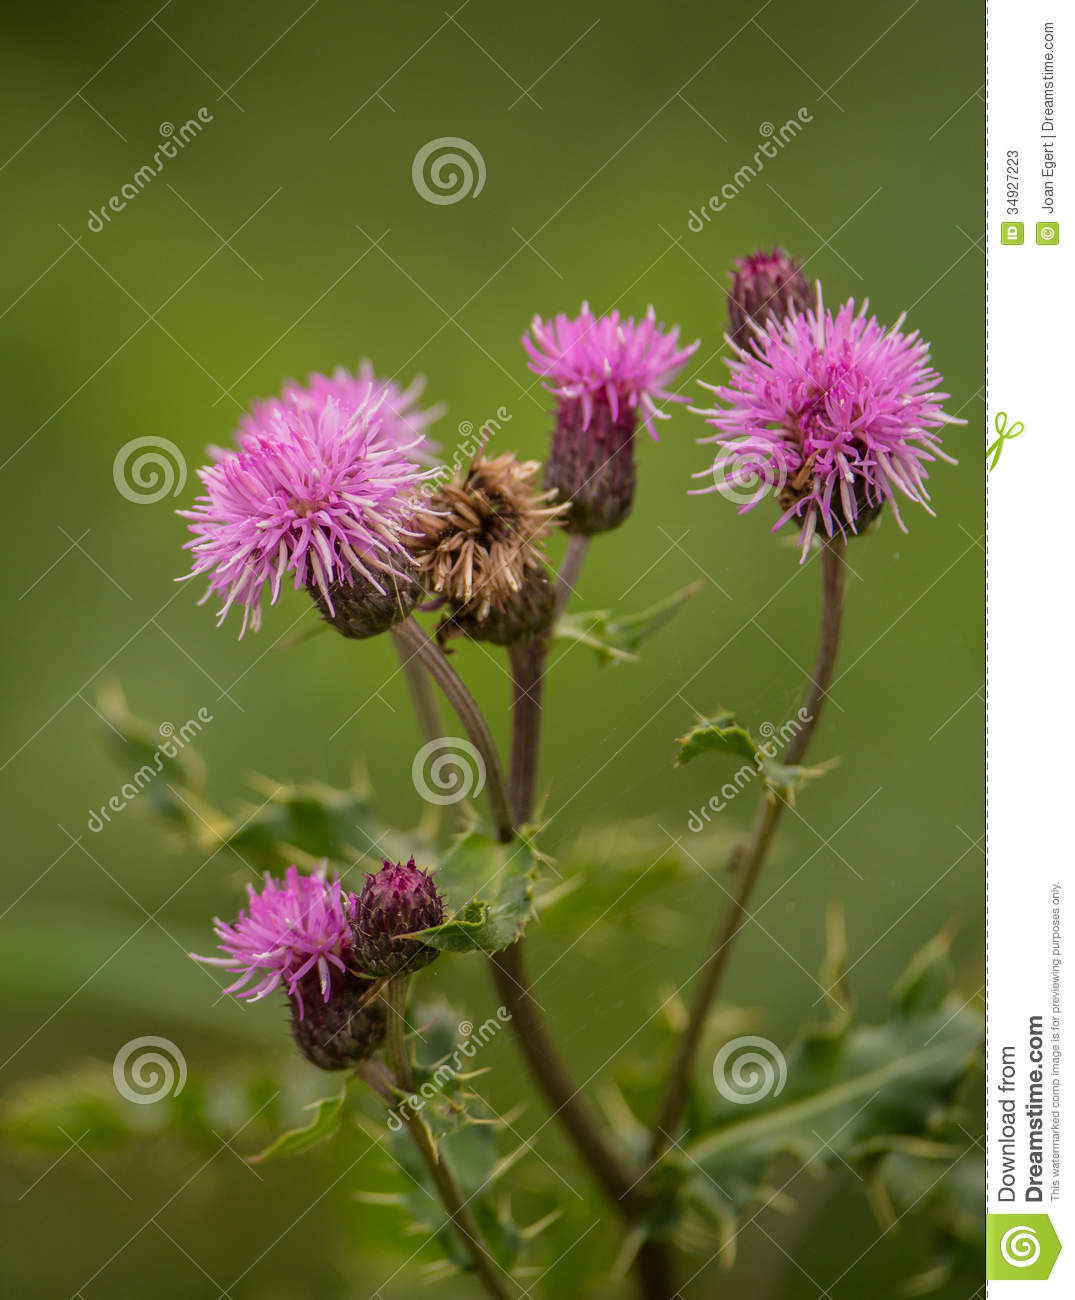 Purple Flowers Of The Creeping Thistle Stock Image Image Of